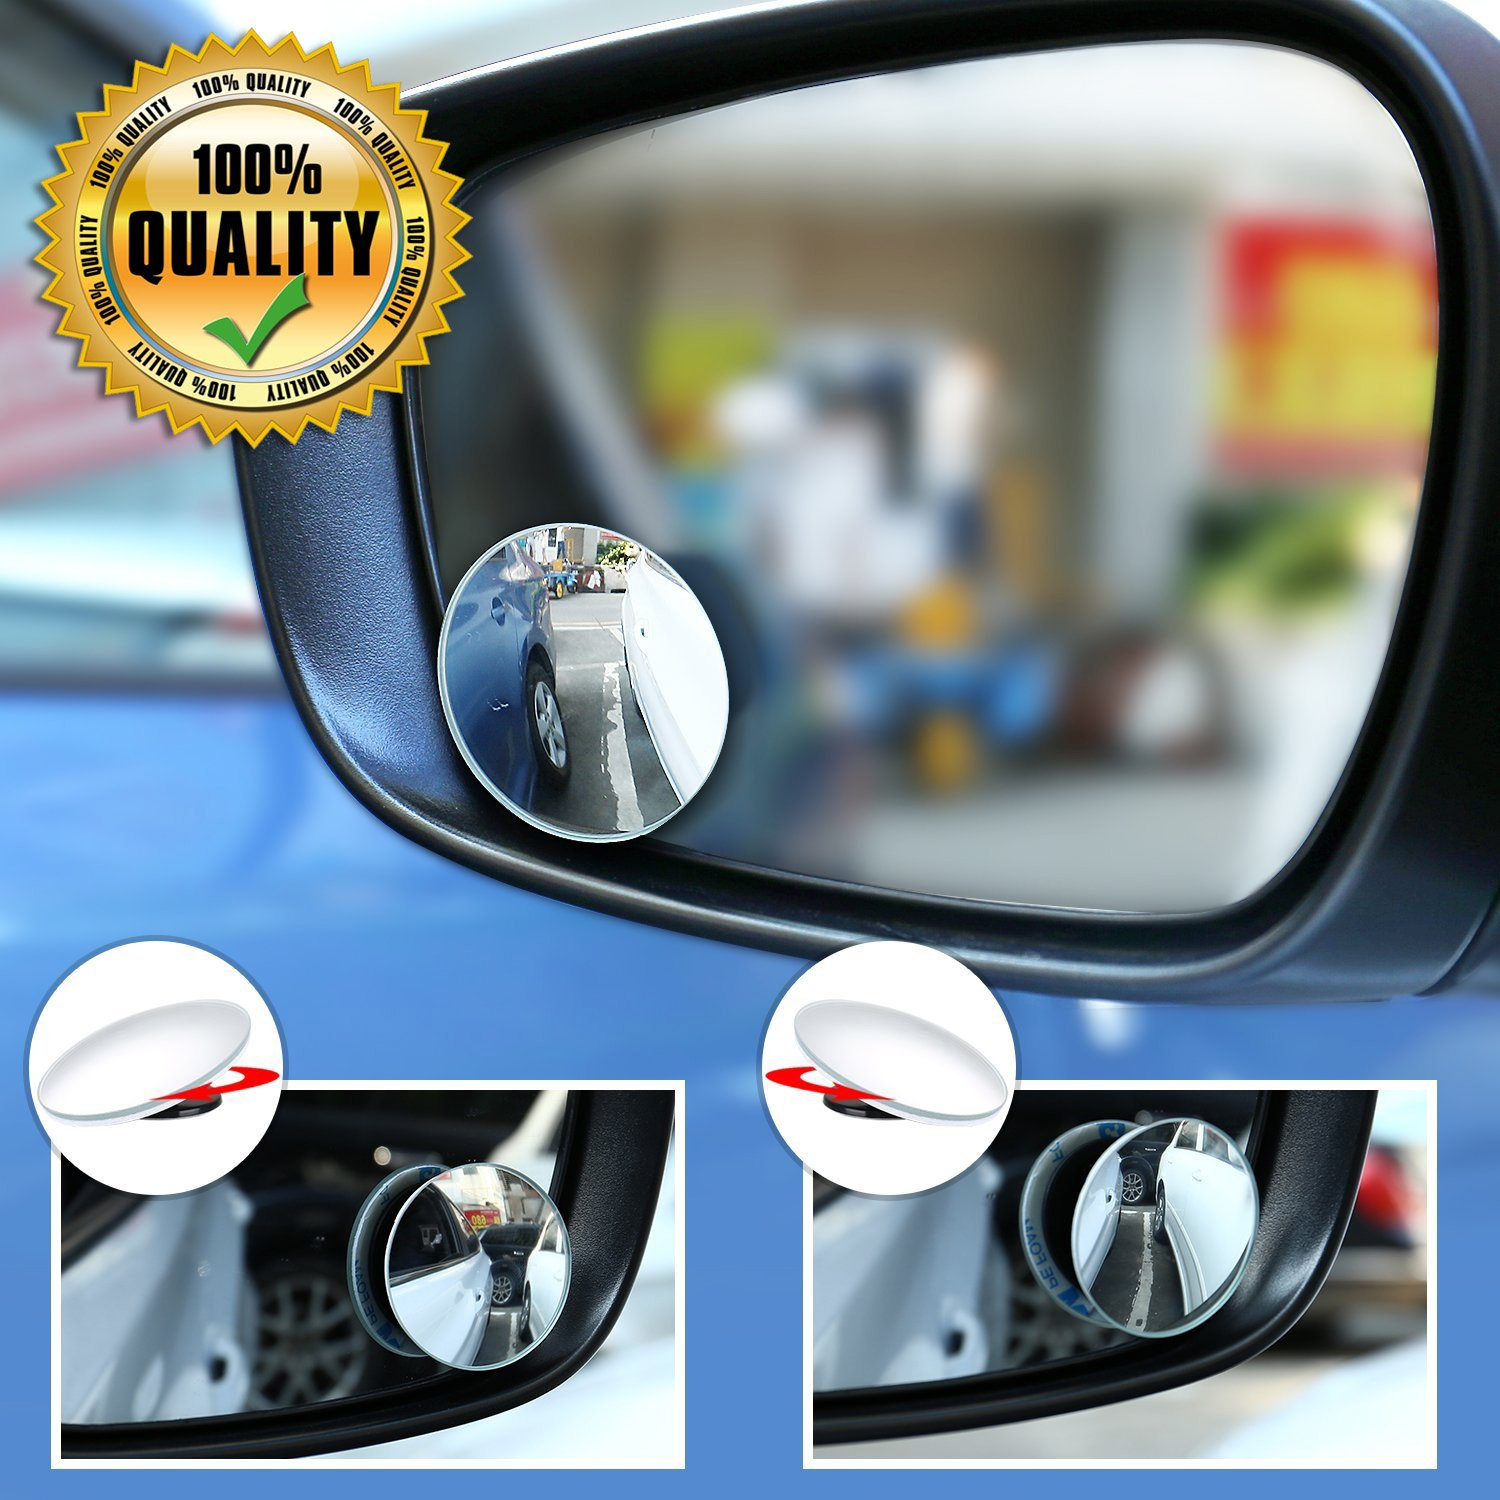 Blind Spot Mirror Car Convex Rearview Mirror, Amison 360 Degree Adjustable Reversing Wide Angle Frameless HD Glass Car Rear View Mirror for SUV Motorcycle Stick-on rearview mirror, 2 Pack Round